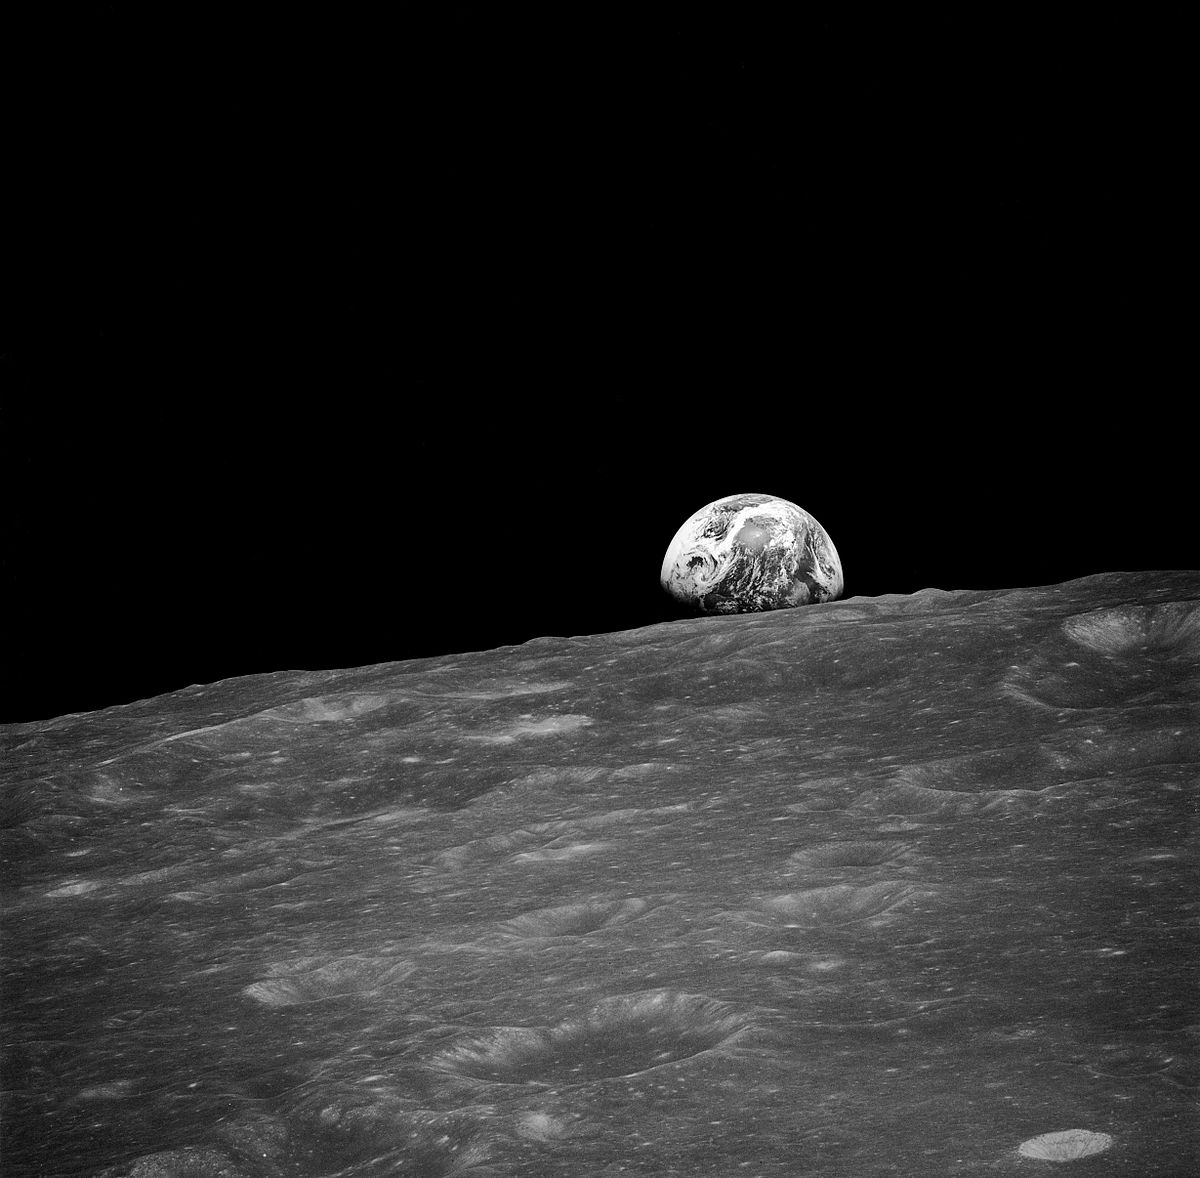 apollo space orbit - photo #29